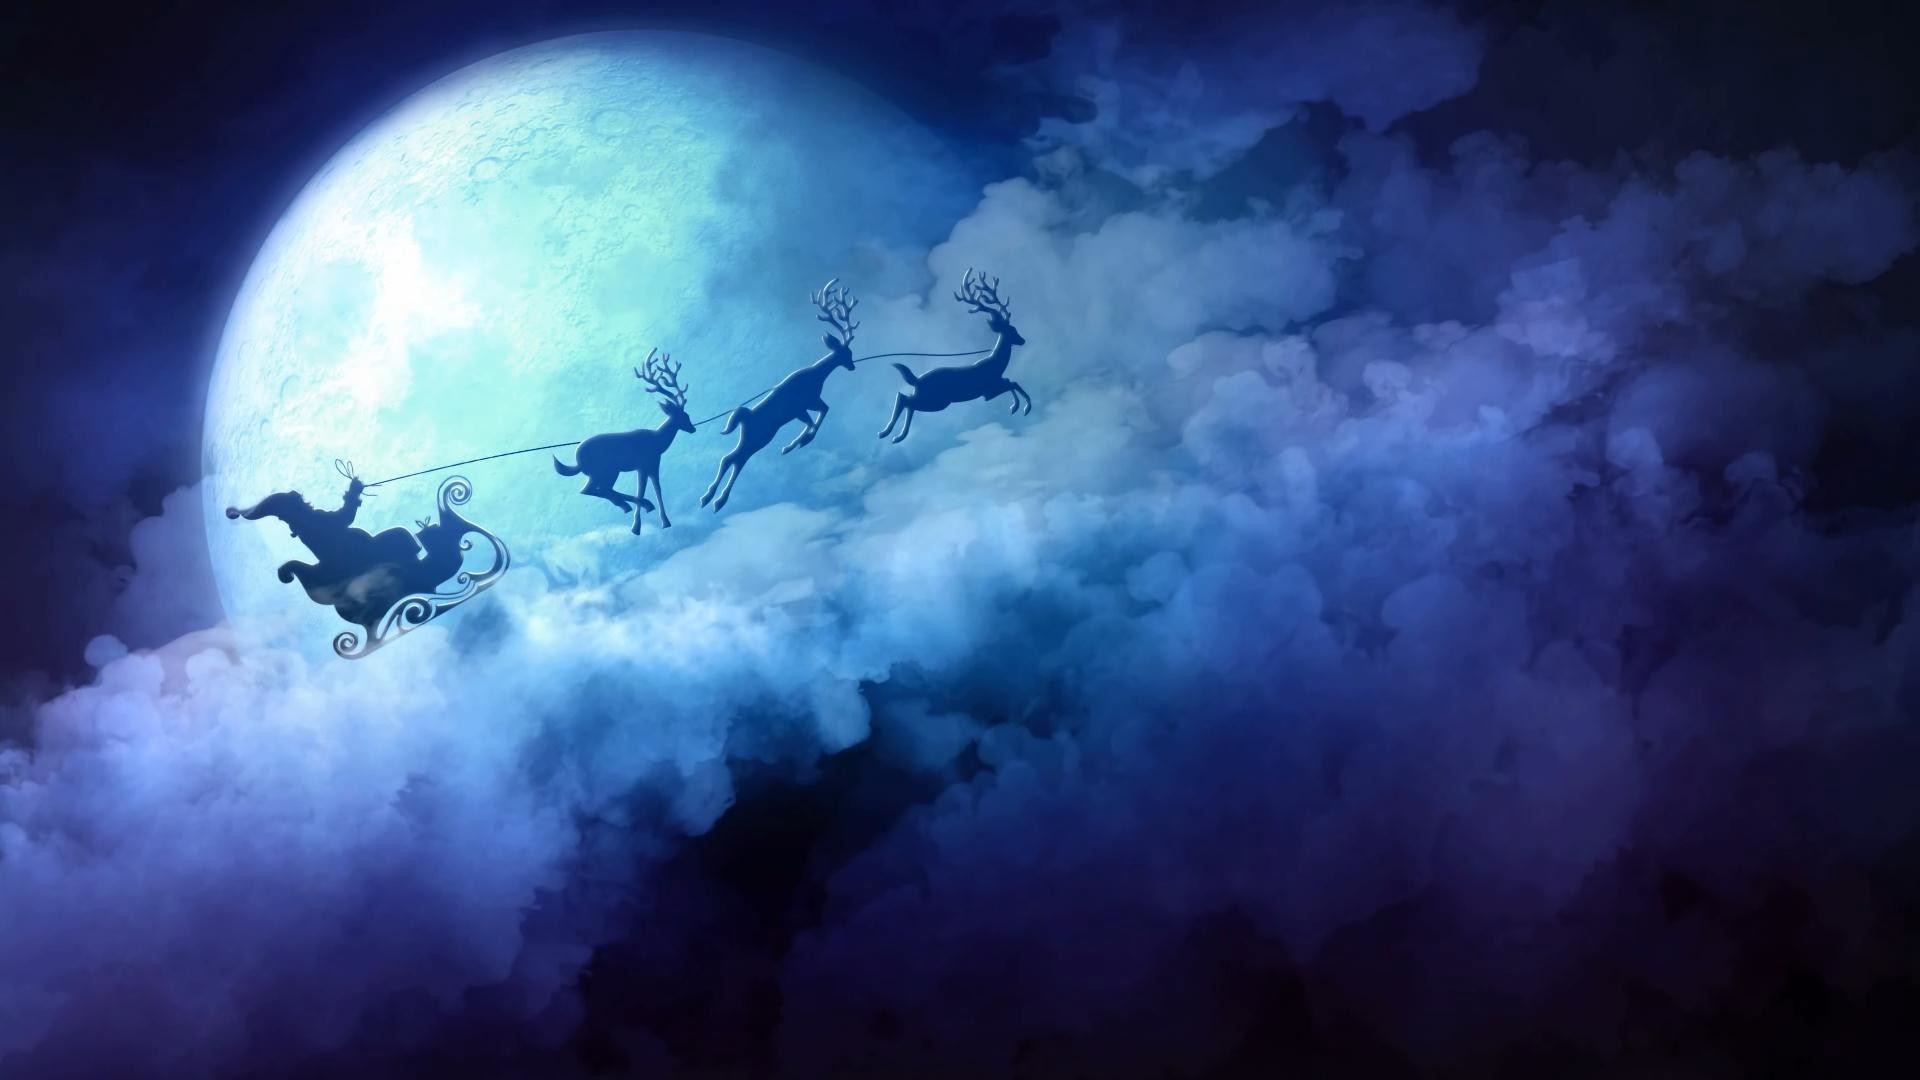 5 Best Holiday Animated Wallpapers for your Desktop